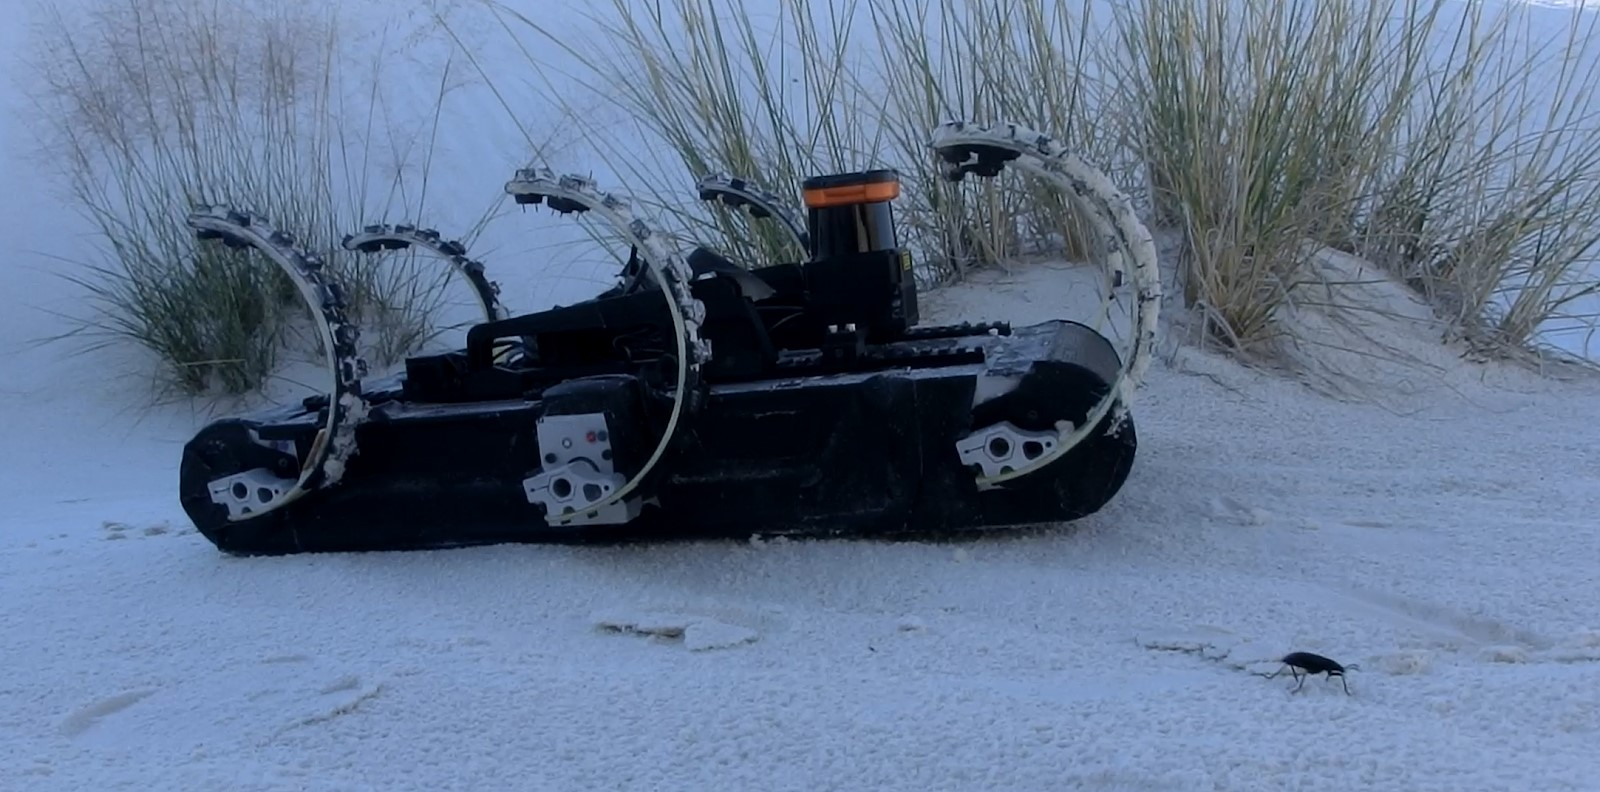 RHex robot and a darkling beetle at White Sands National Monument in southern New Mexico, 2014.